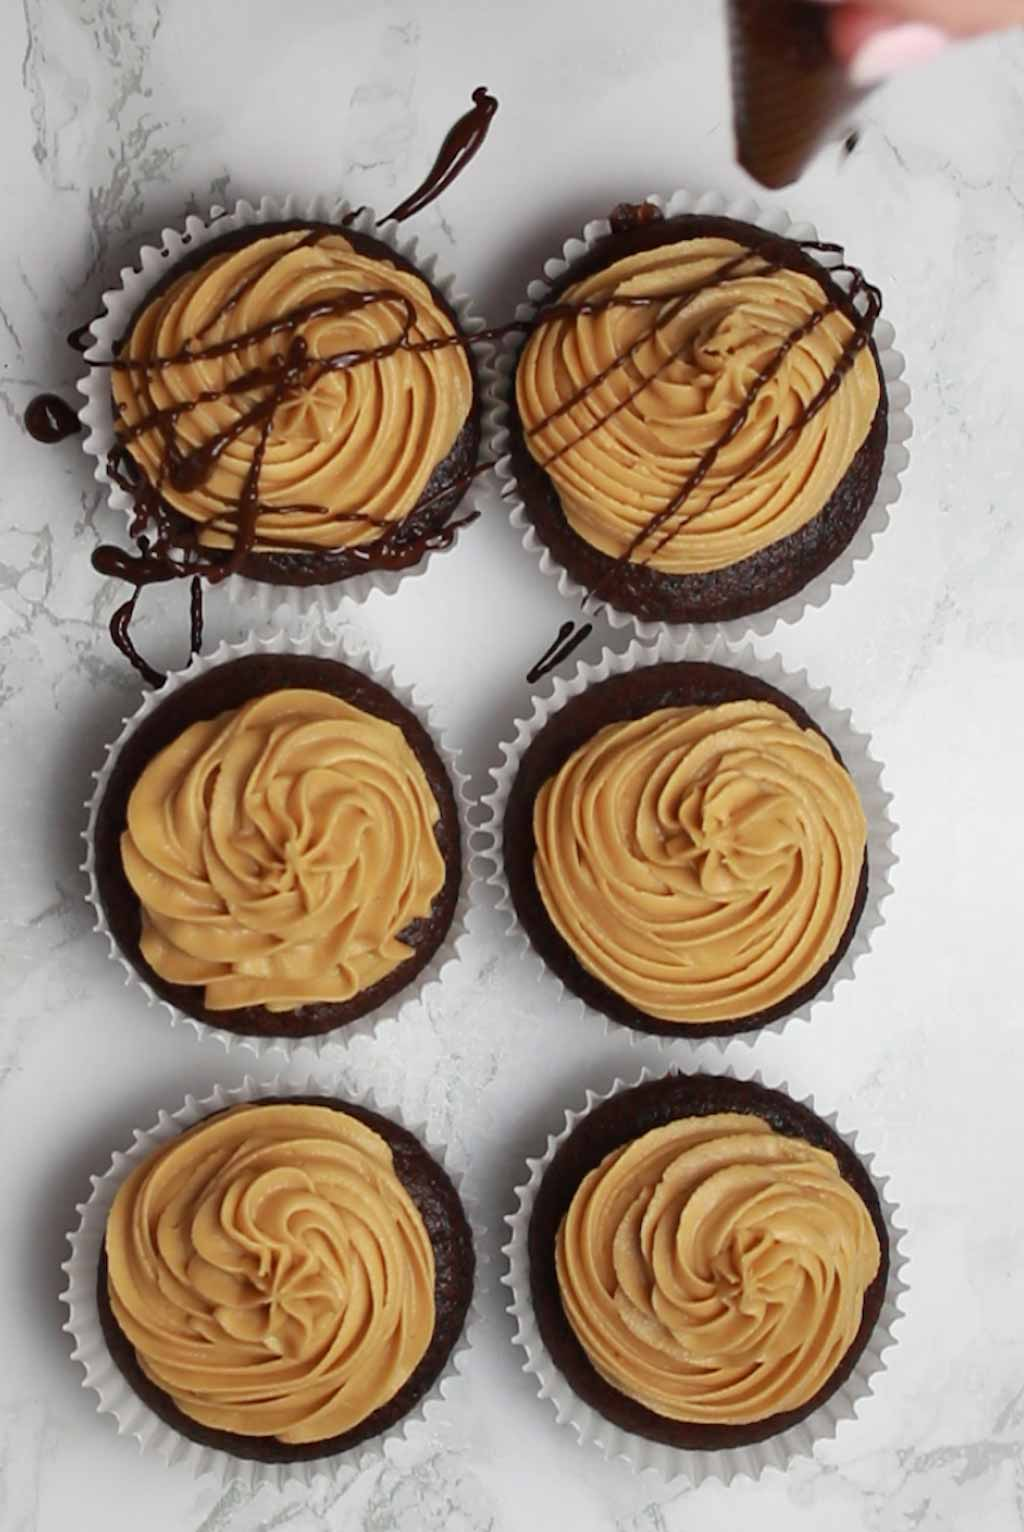 Drizzling Chocolate Over The Cupcakes